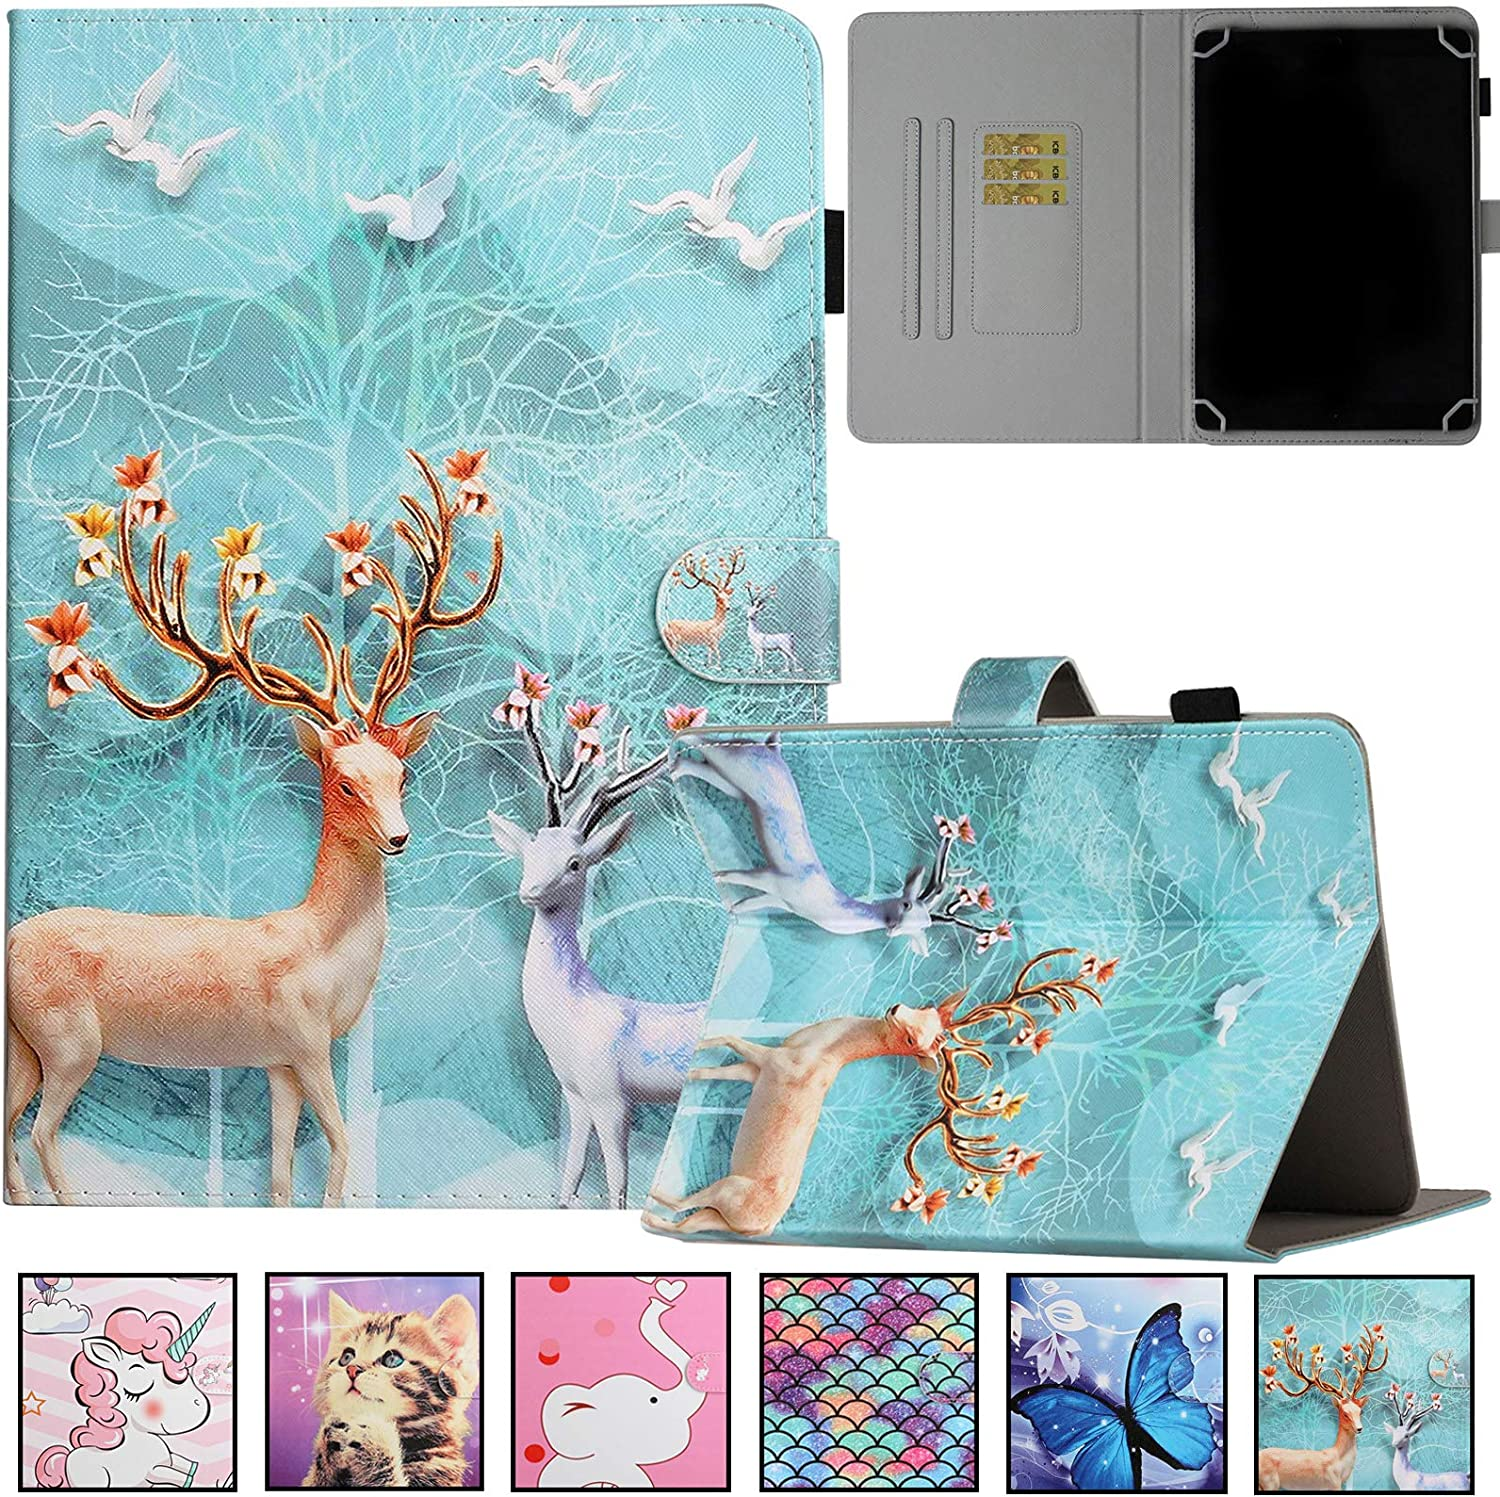 Universal Case for 9.0-10.5 inch Tablet,Artyond PU Leather Card Slot Wallet Folio Stand Cover for Apple/Samsung/Kindle/Huawei/Lenovo/Android/Dragon Touch 9.7 9.6 10.1 10.5 Inch Tablet (Sika Deer)